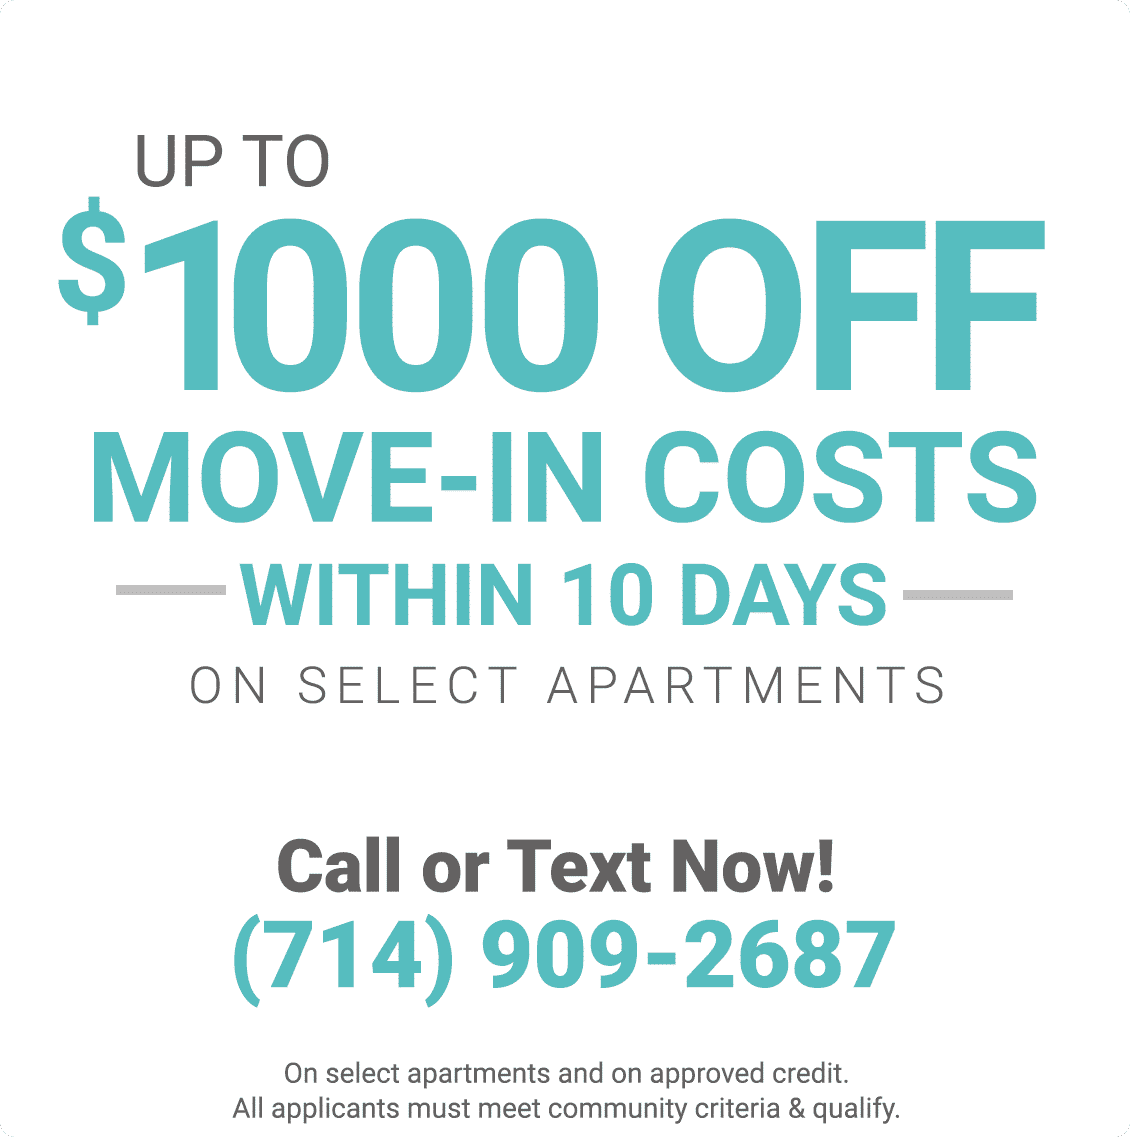 Up to $1000 off move in costs within 10 days on select apartments and on approved credit